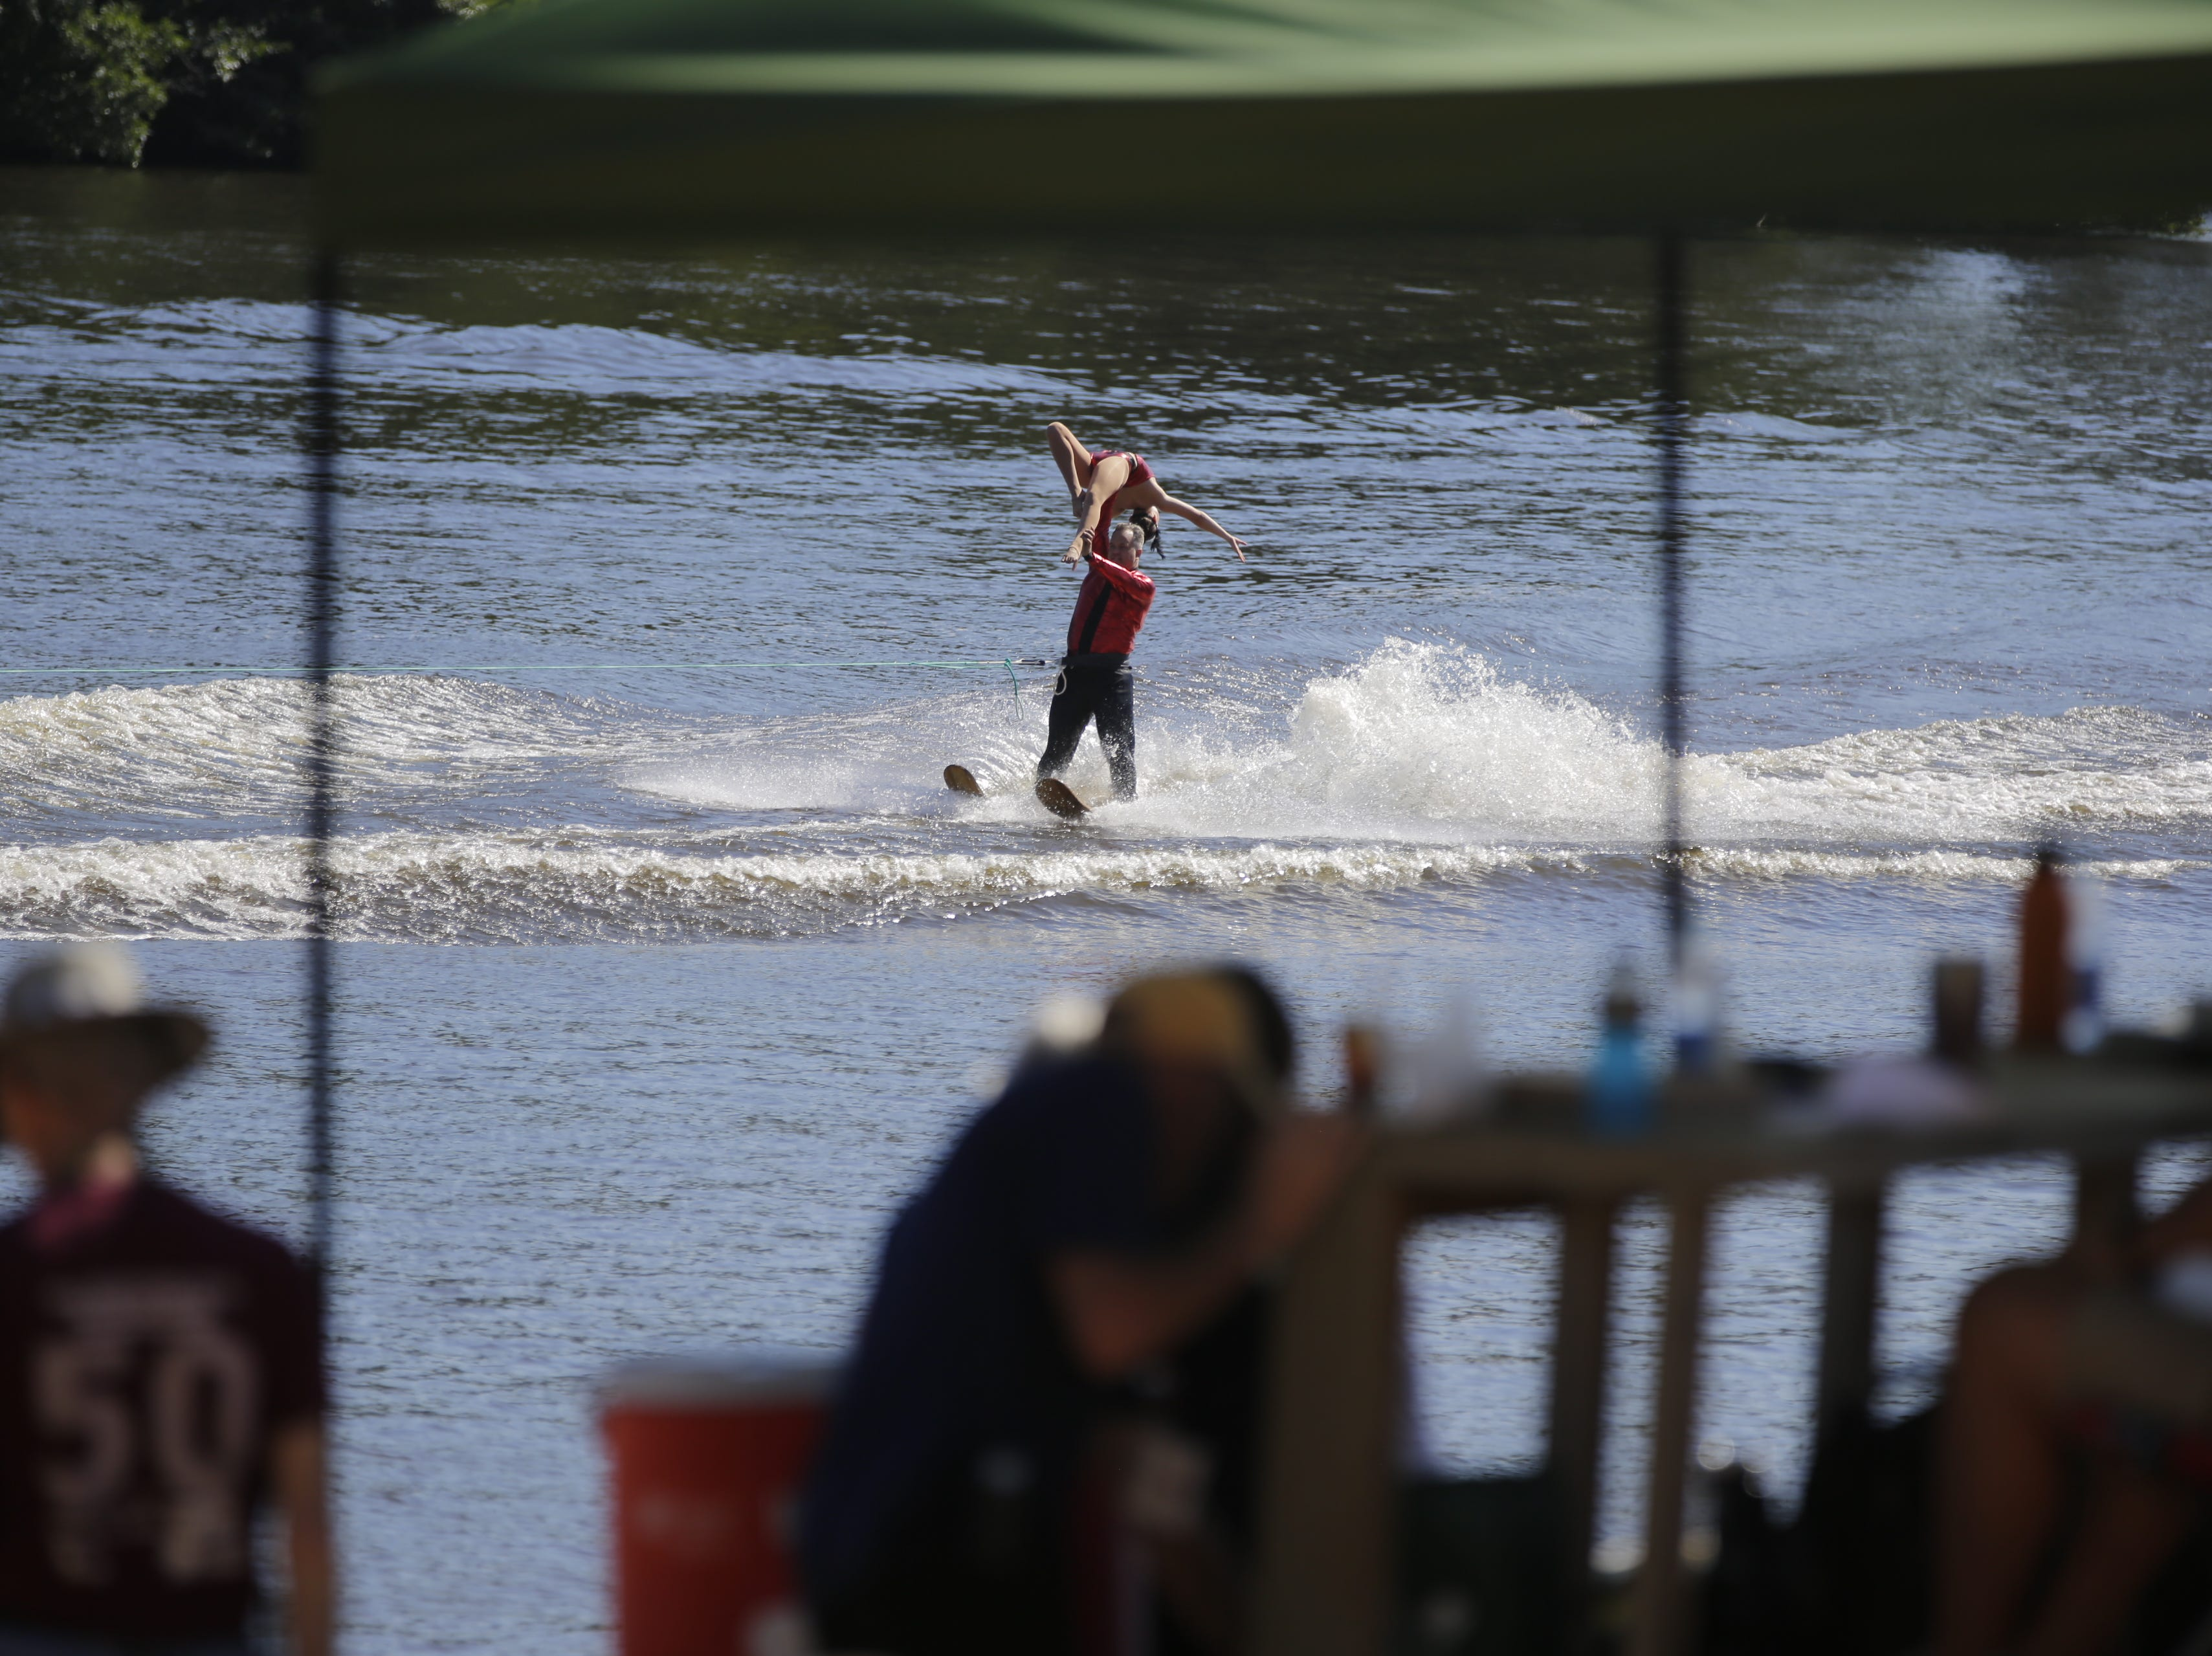 Michael and Megan Bolda compete in the doubles category during the Wisconsin State Water Ski Show Championships on Lake Wazeecha in Kellner Thursday, July 19, 2018.